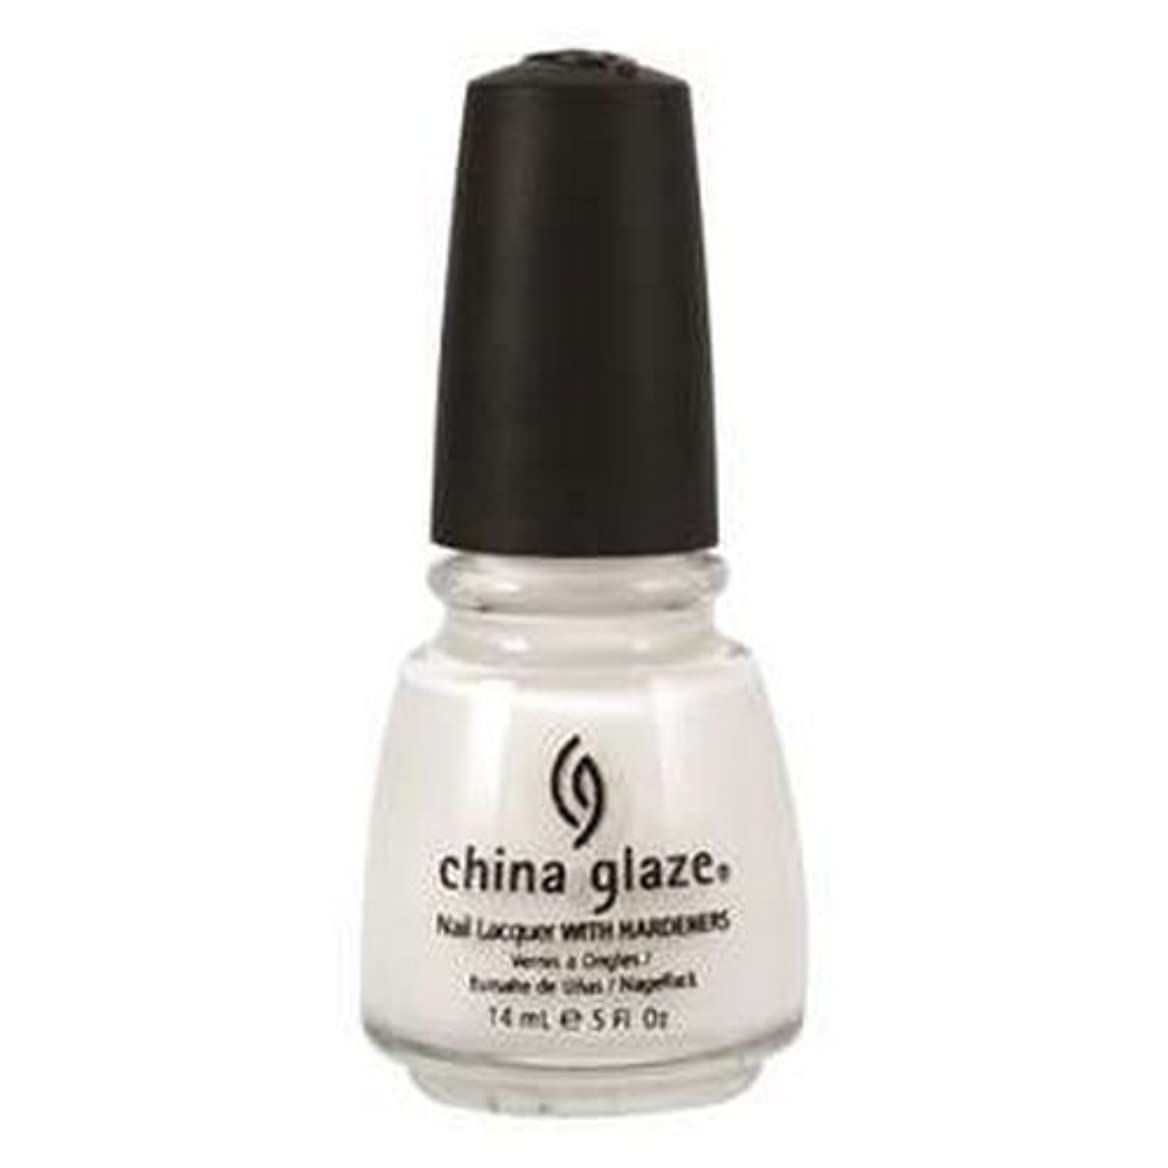 美容師スピン銃(6 Pack) CHINA GLAZE Nail Lacquer with Nail Hardner 2 - Snow (並行輸入品)